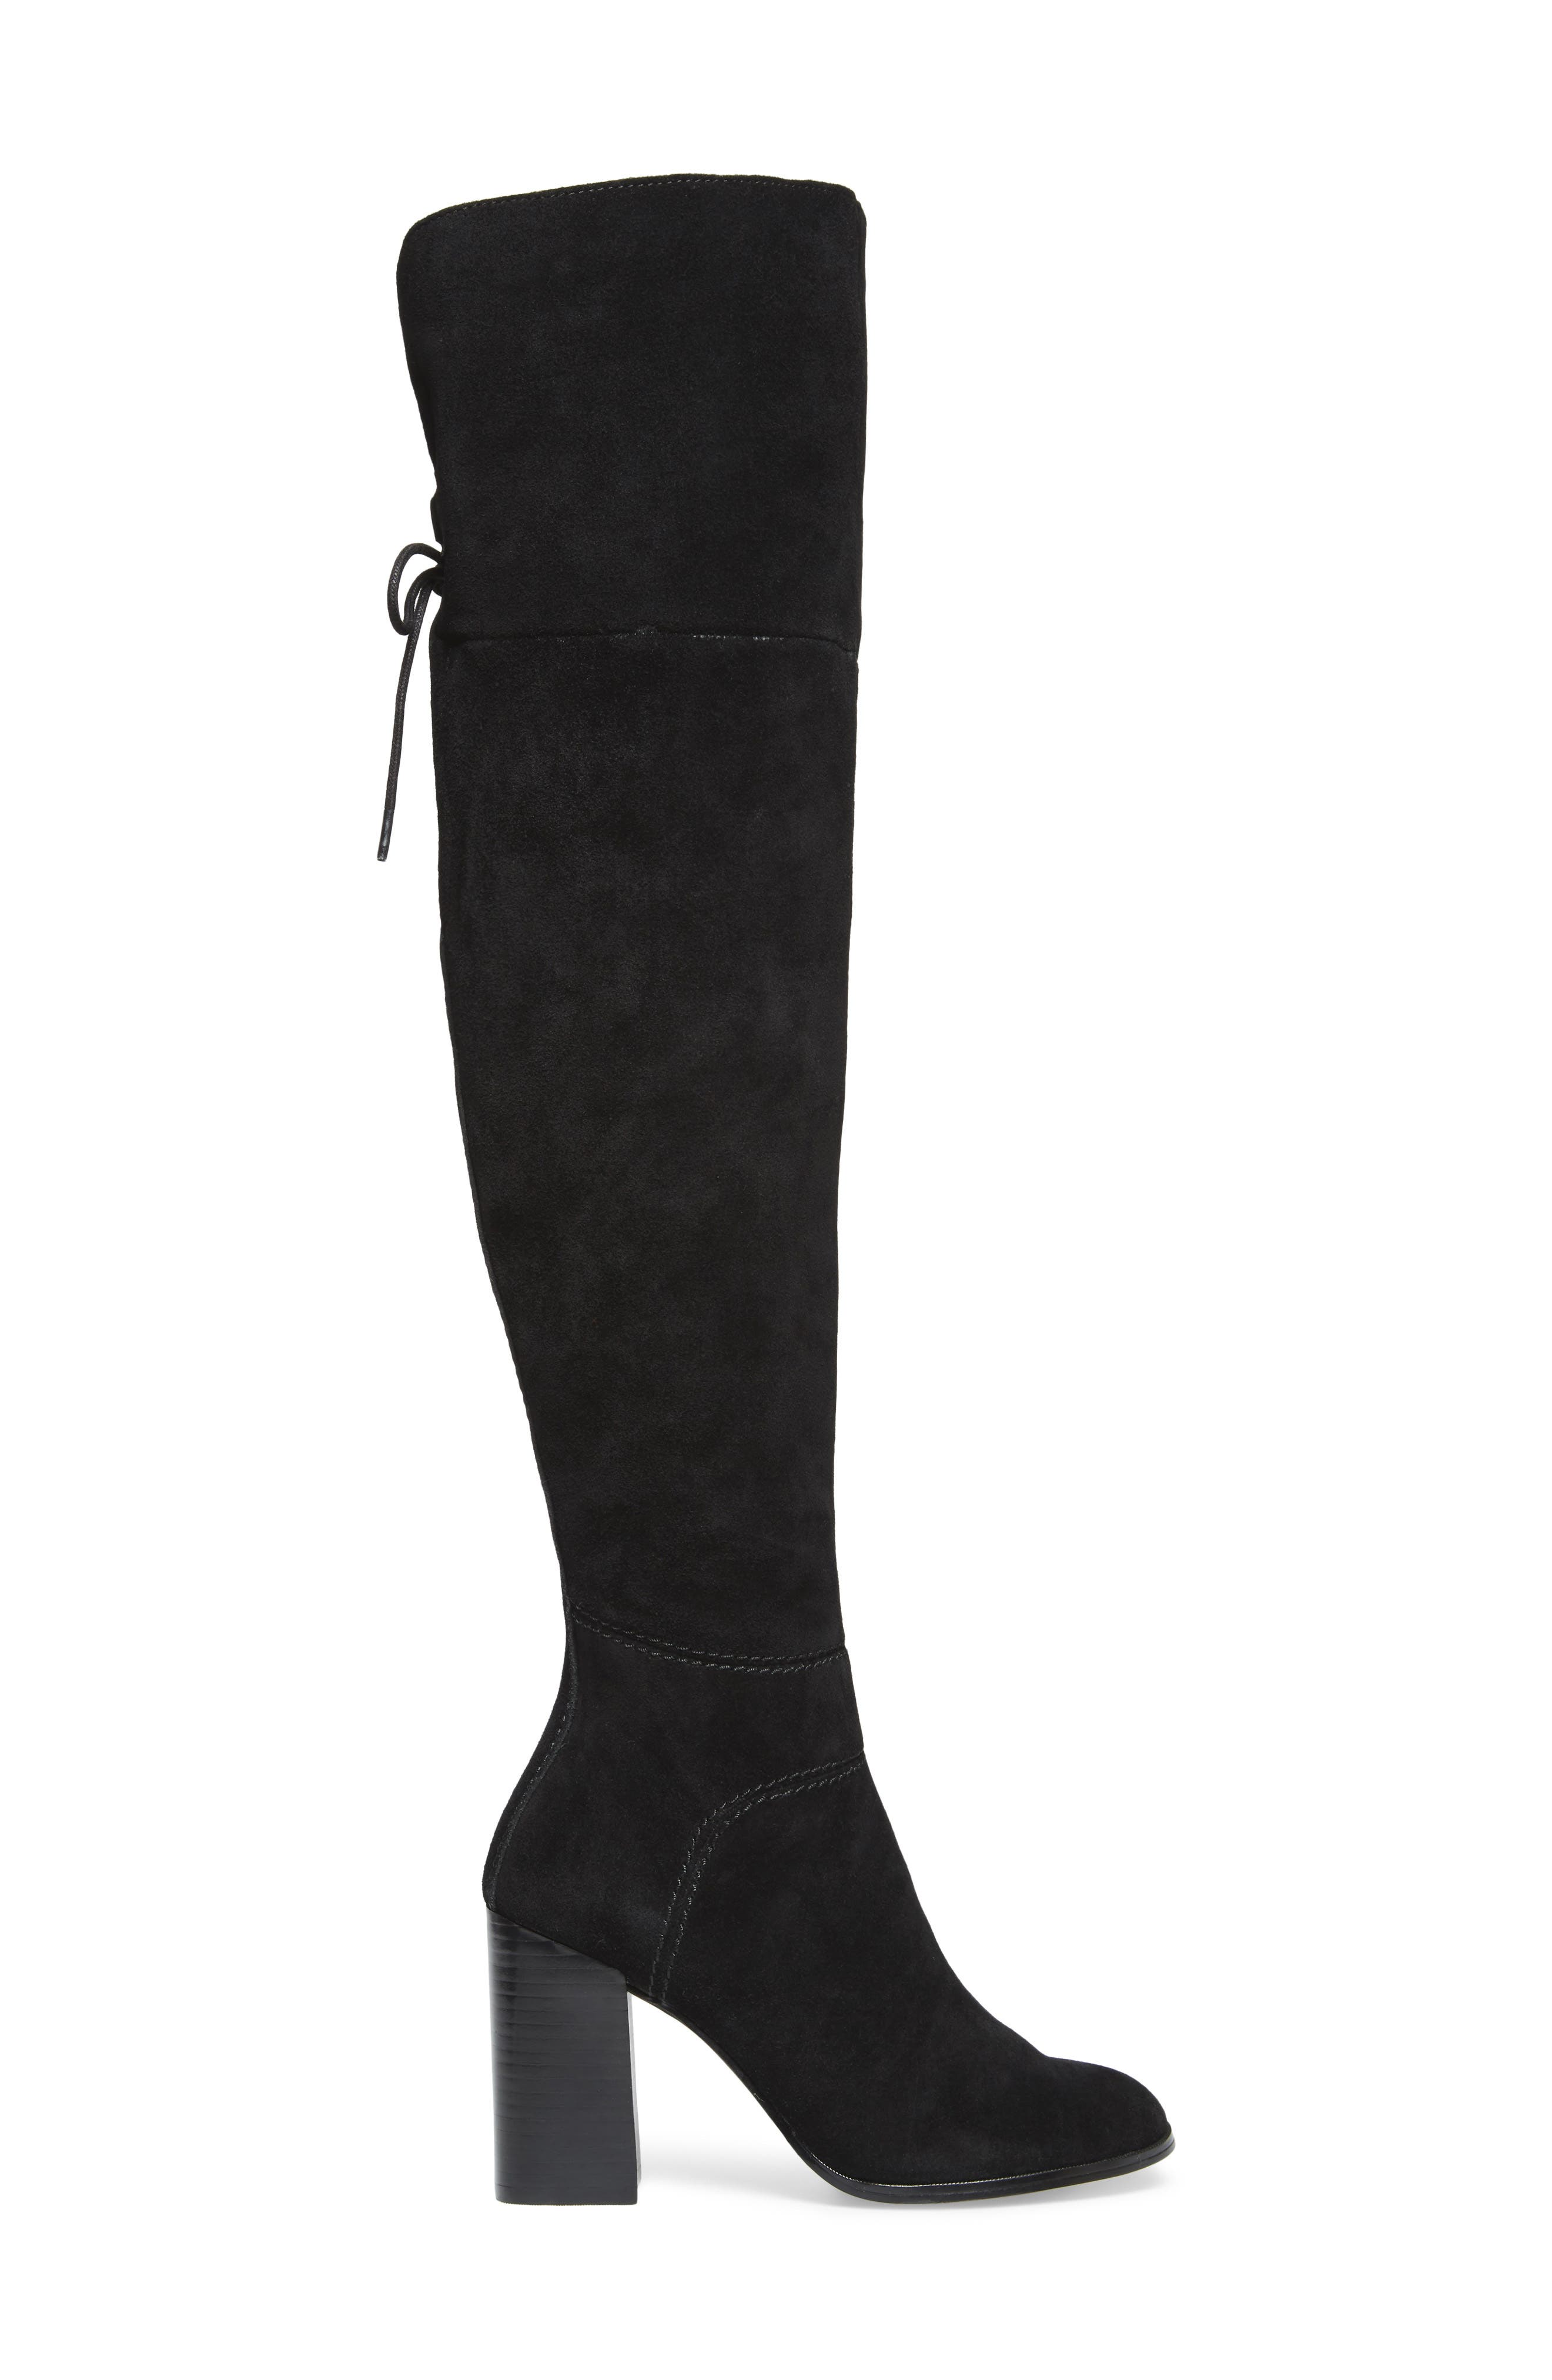 Novela Cuffable Over the Knee Boot,                             Alternate thumbnail 3, color,                             006